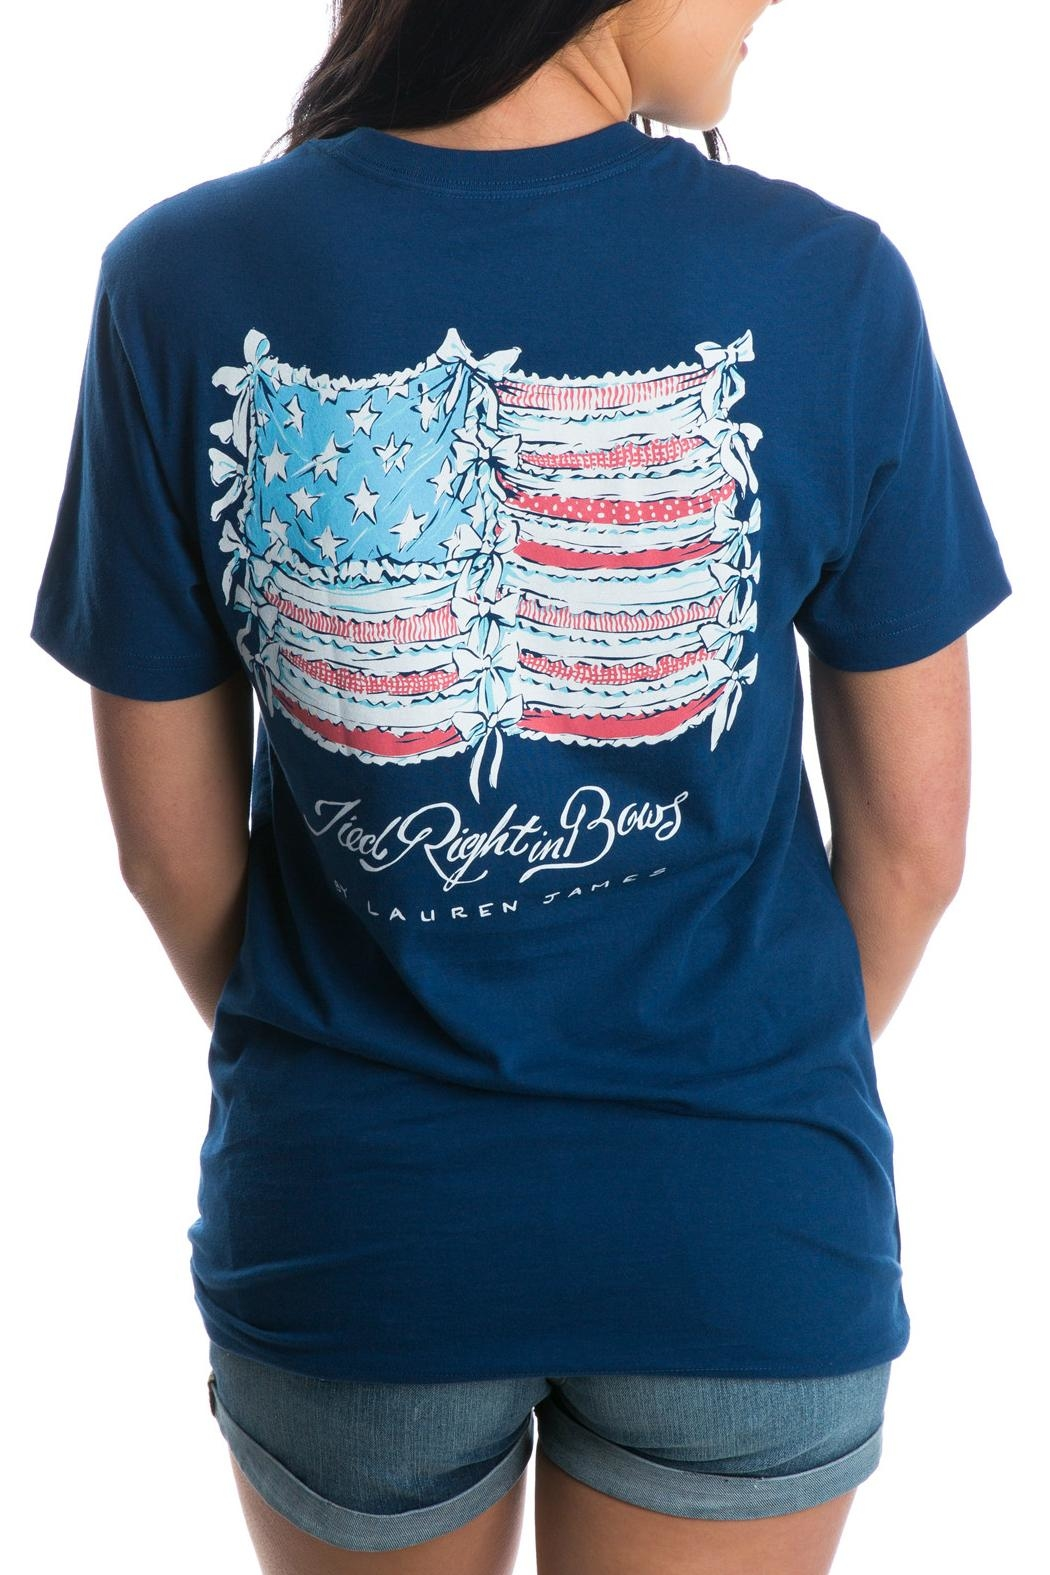 Lauren James Tied Right Tee - Front Cropped Image